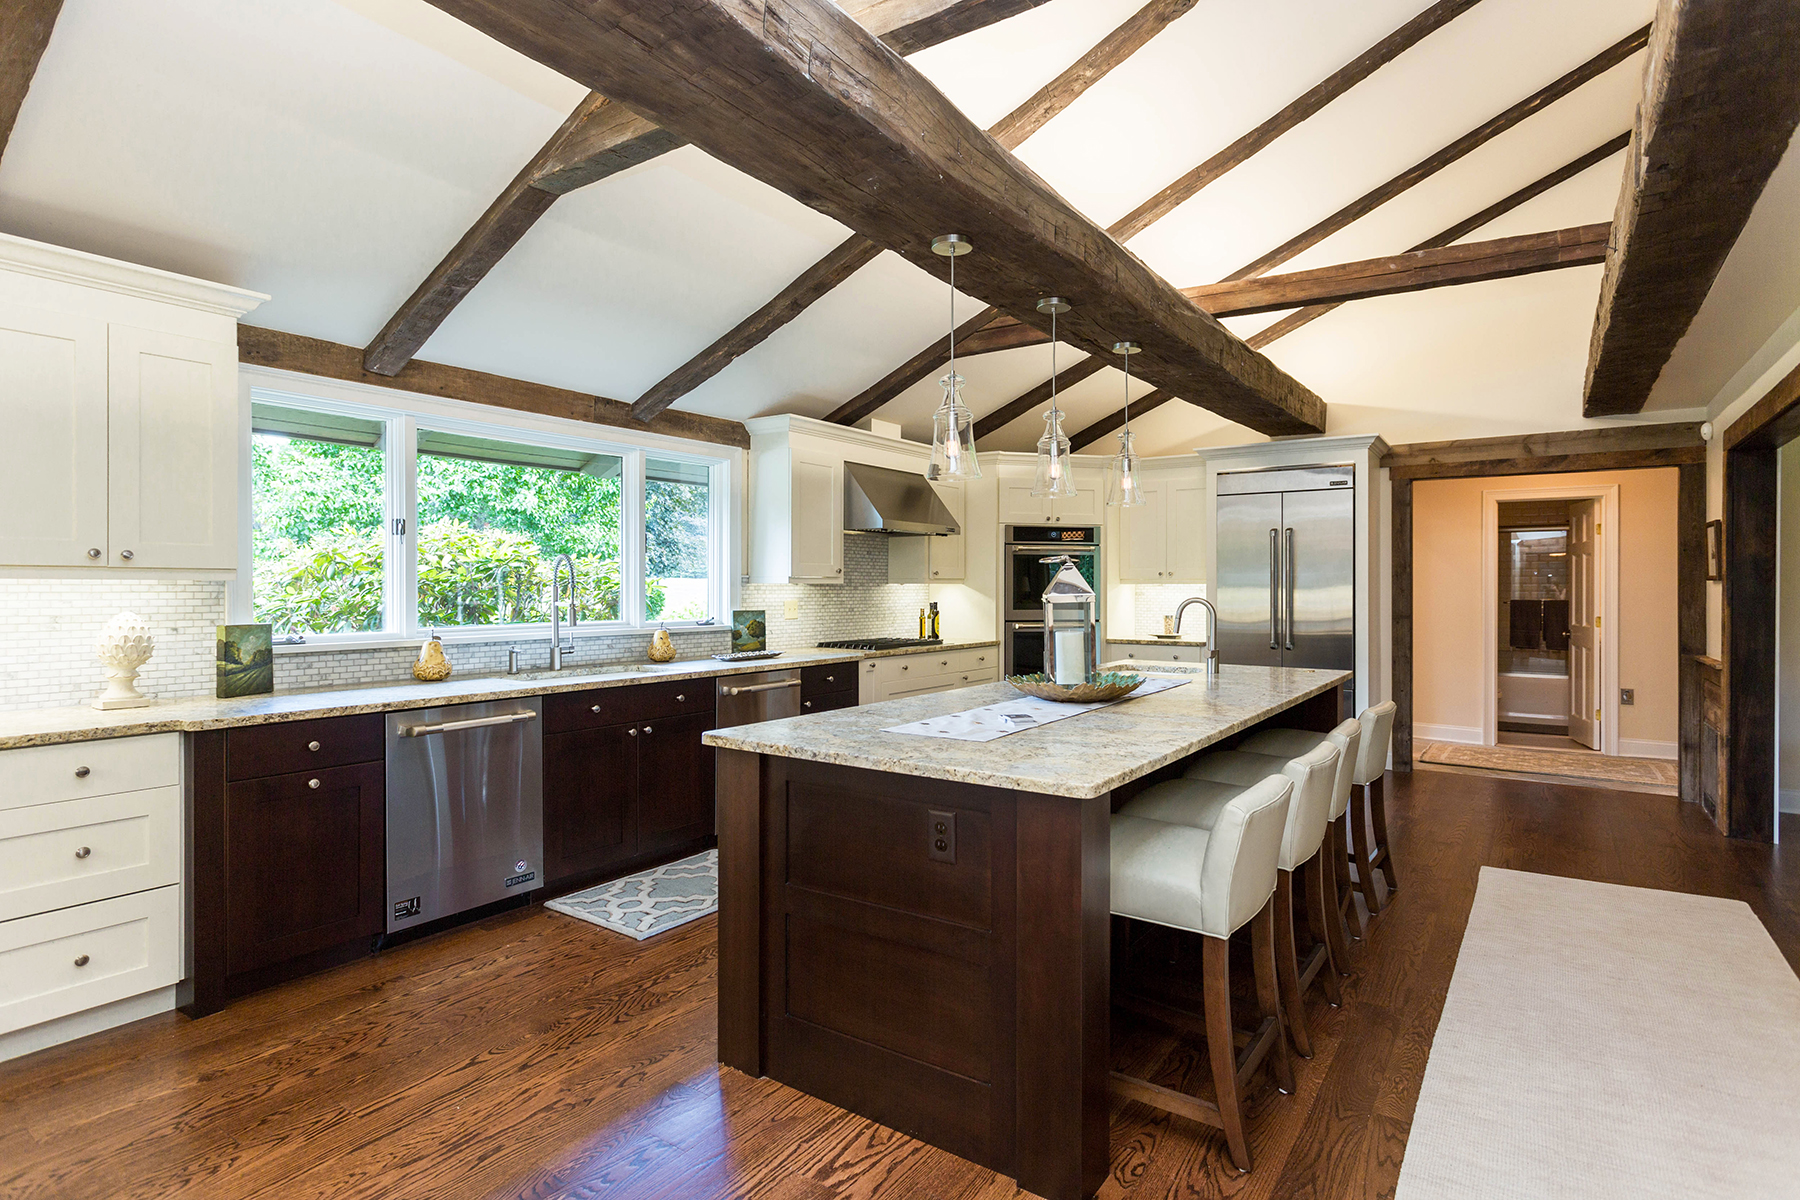 Single Family Home for Sale at Private Oasis 382 Farm To Market Rd Clifton Park, New York 12065 United States